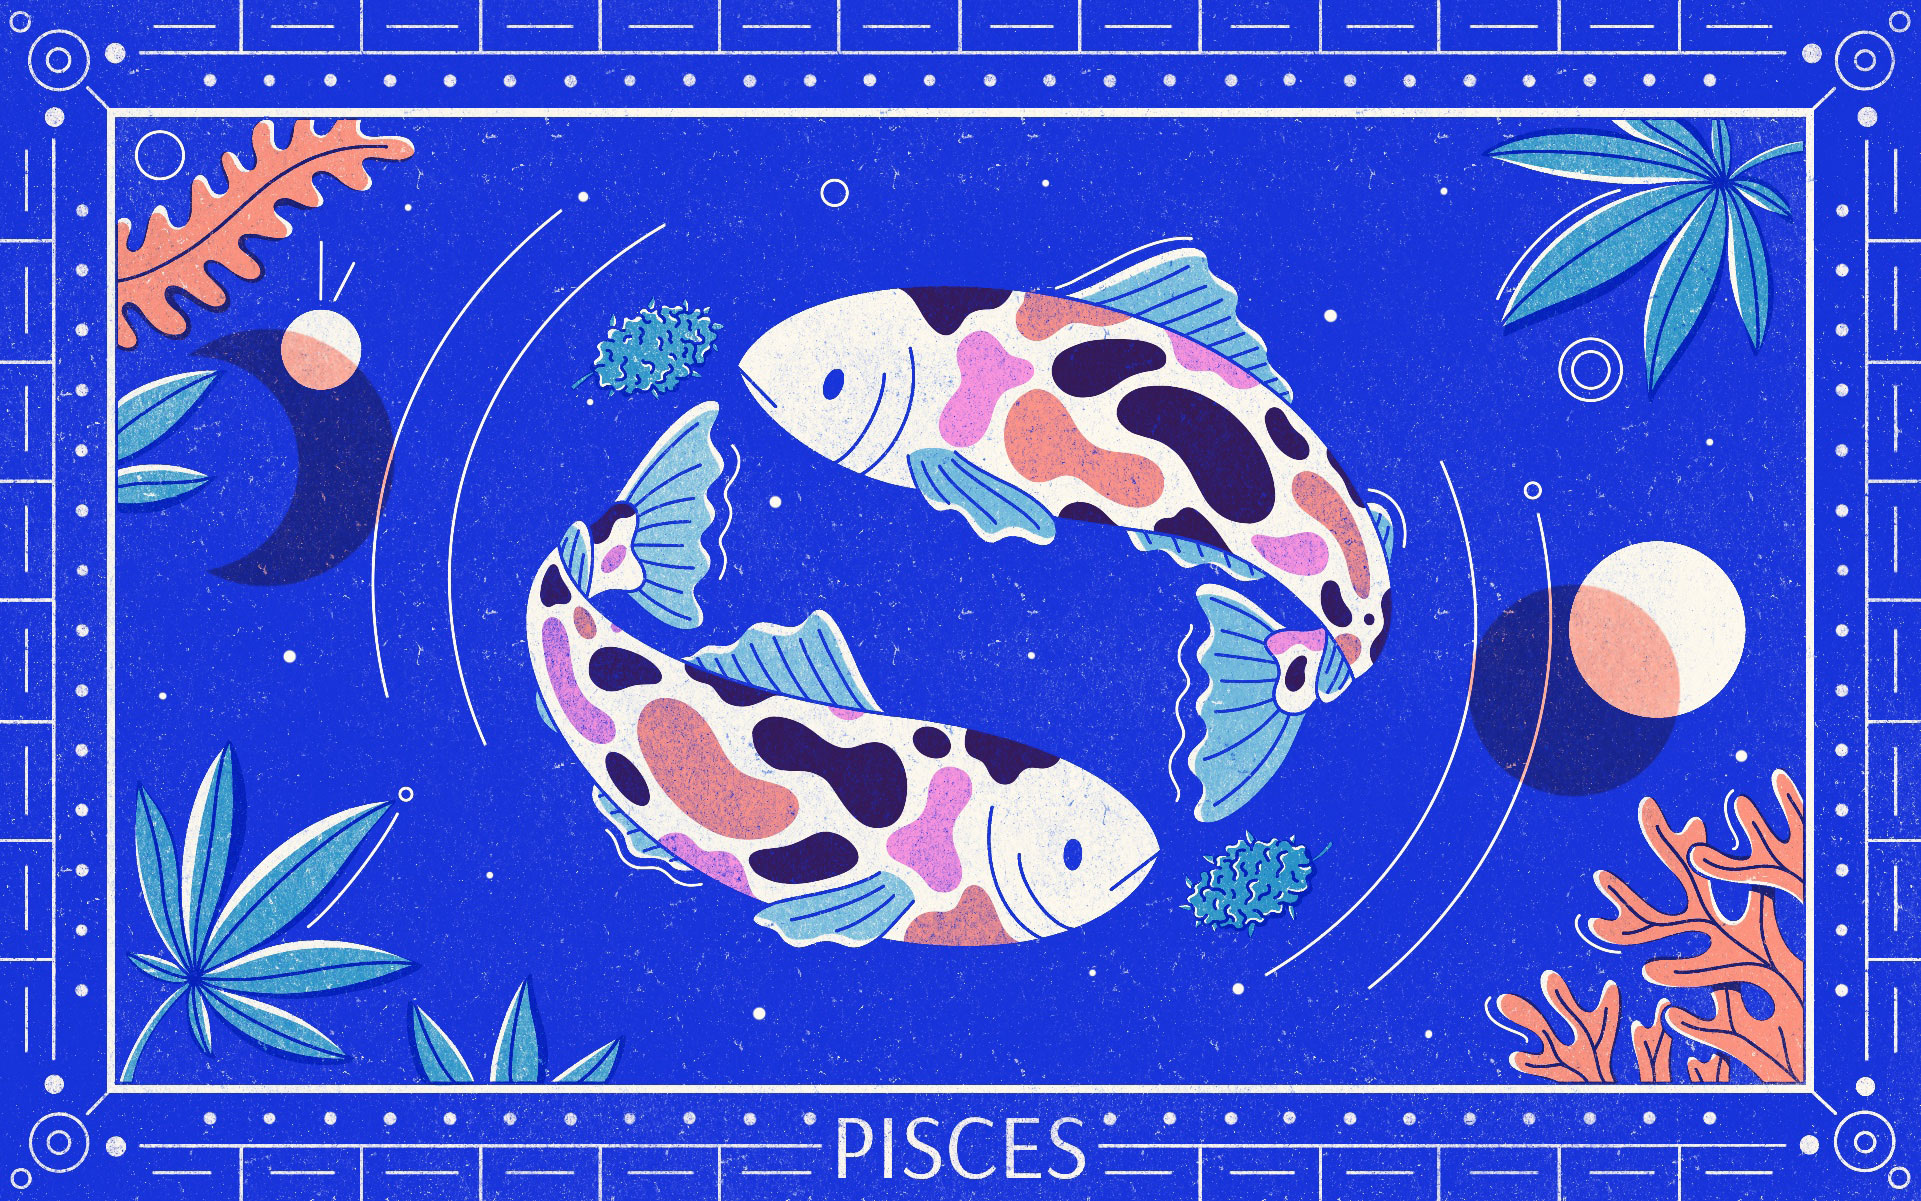 PISCES web Gillian Levine - Star signs and cannabis strains: July 2020 horoscopes